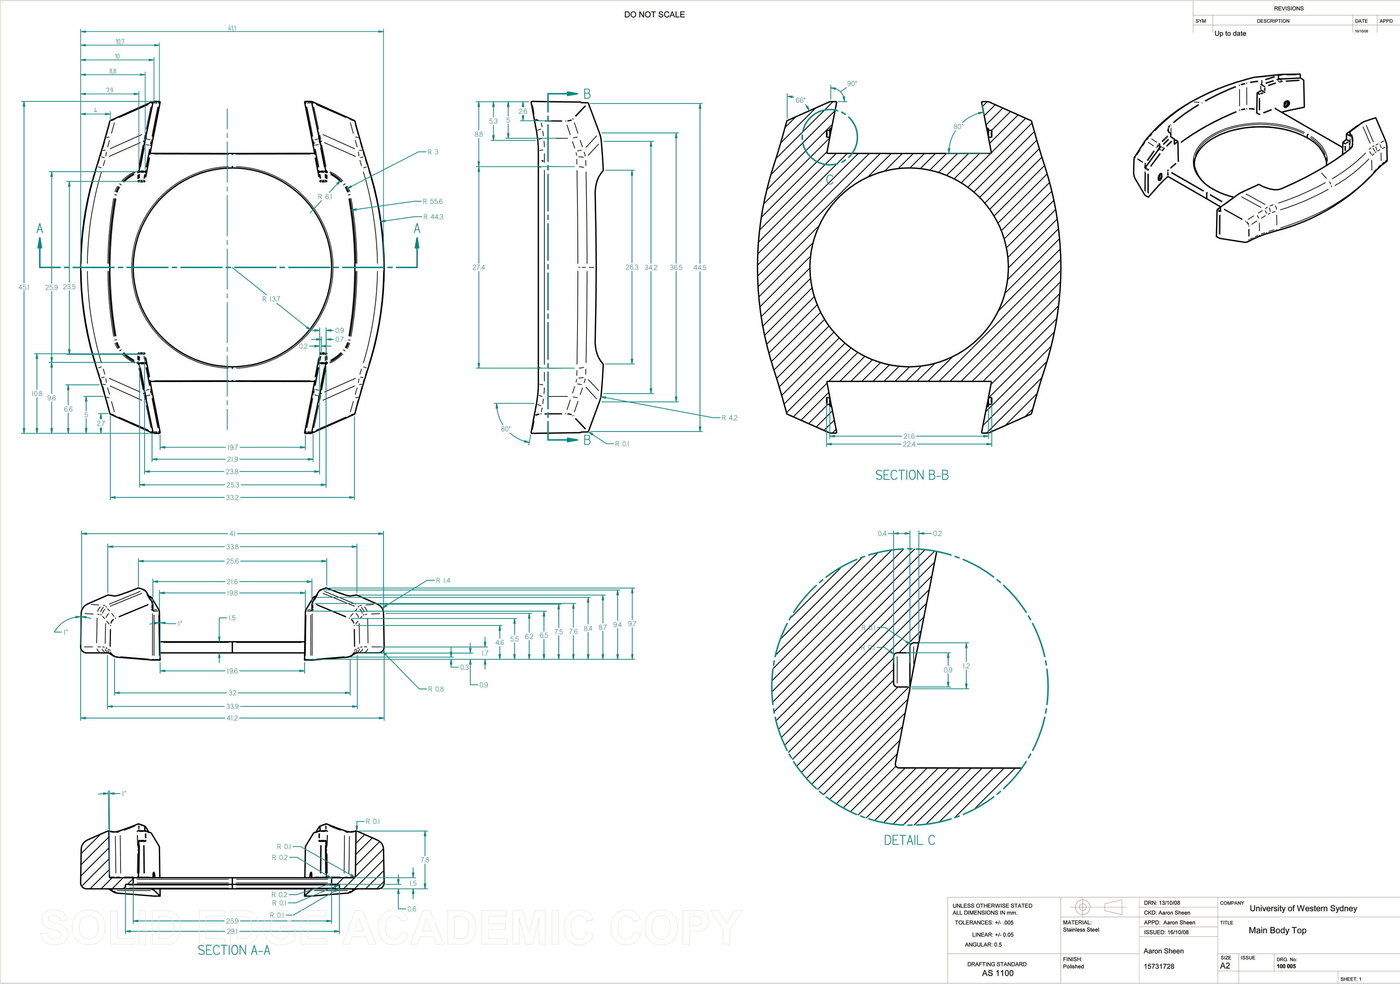 Engineering Drawing Examples By Aaron Sheen At Coroflot Com